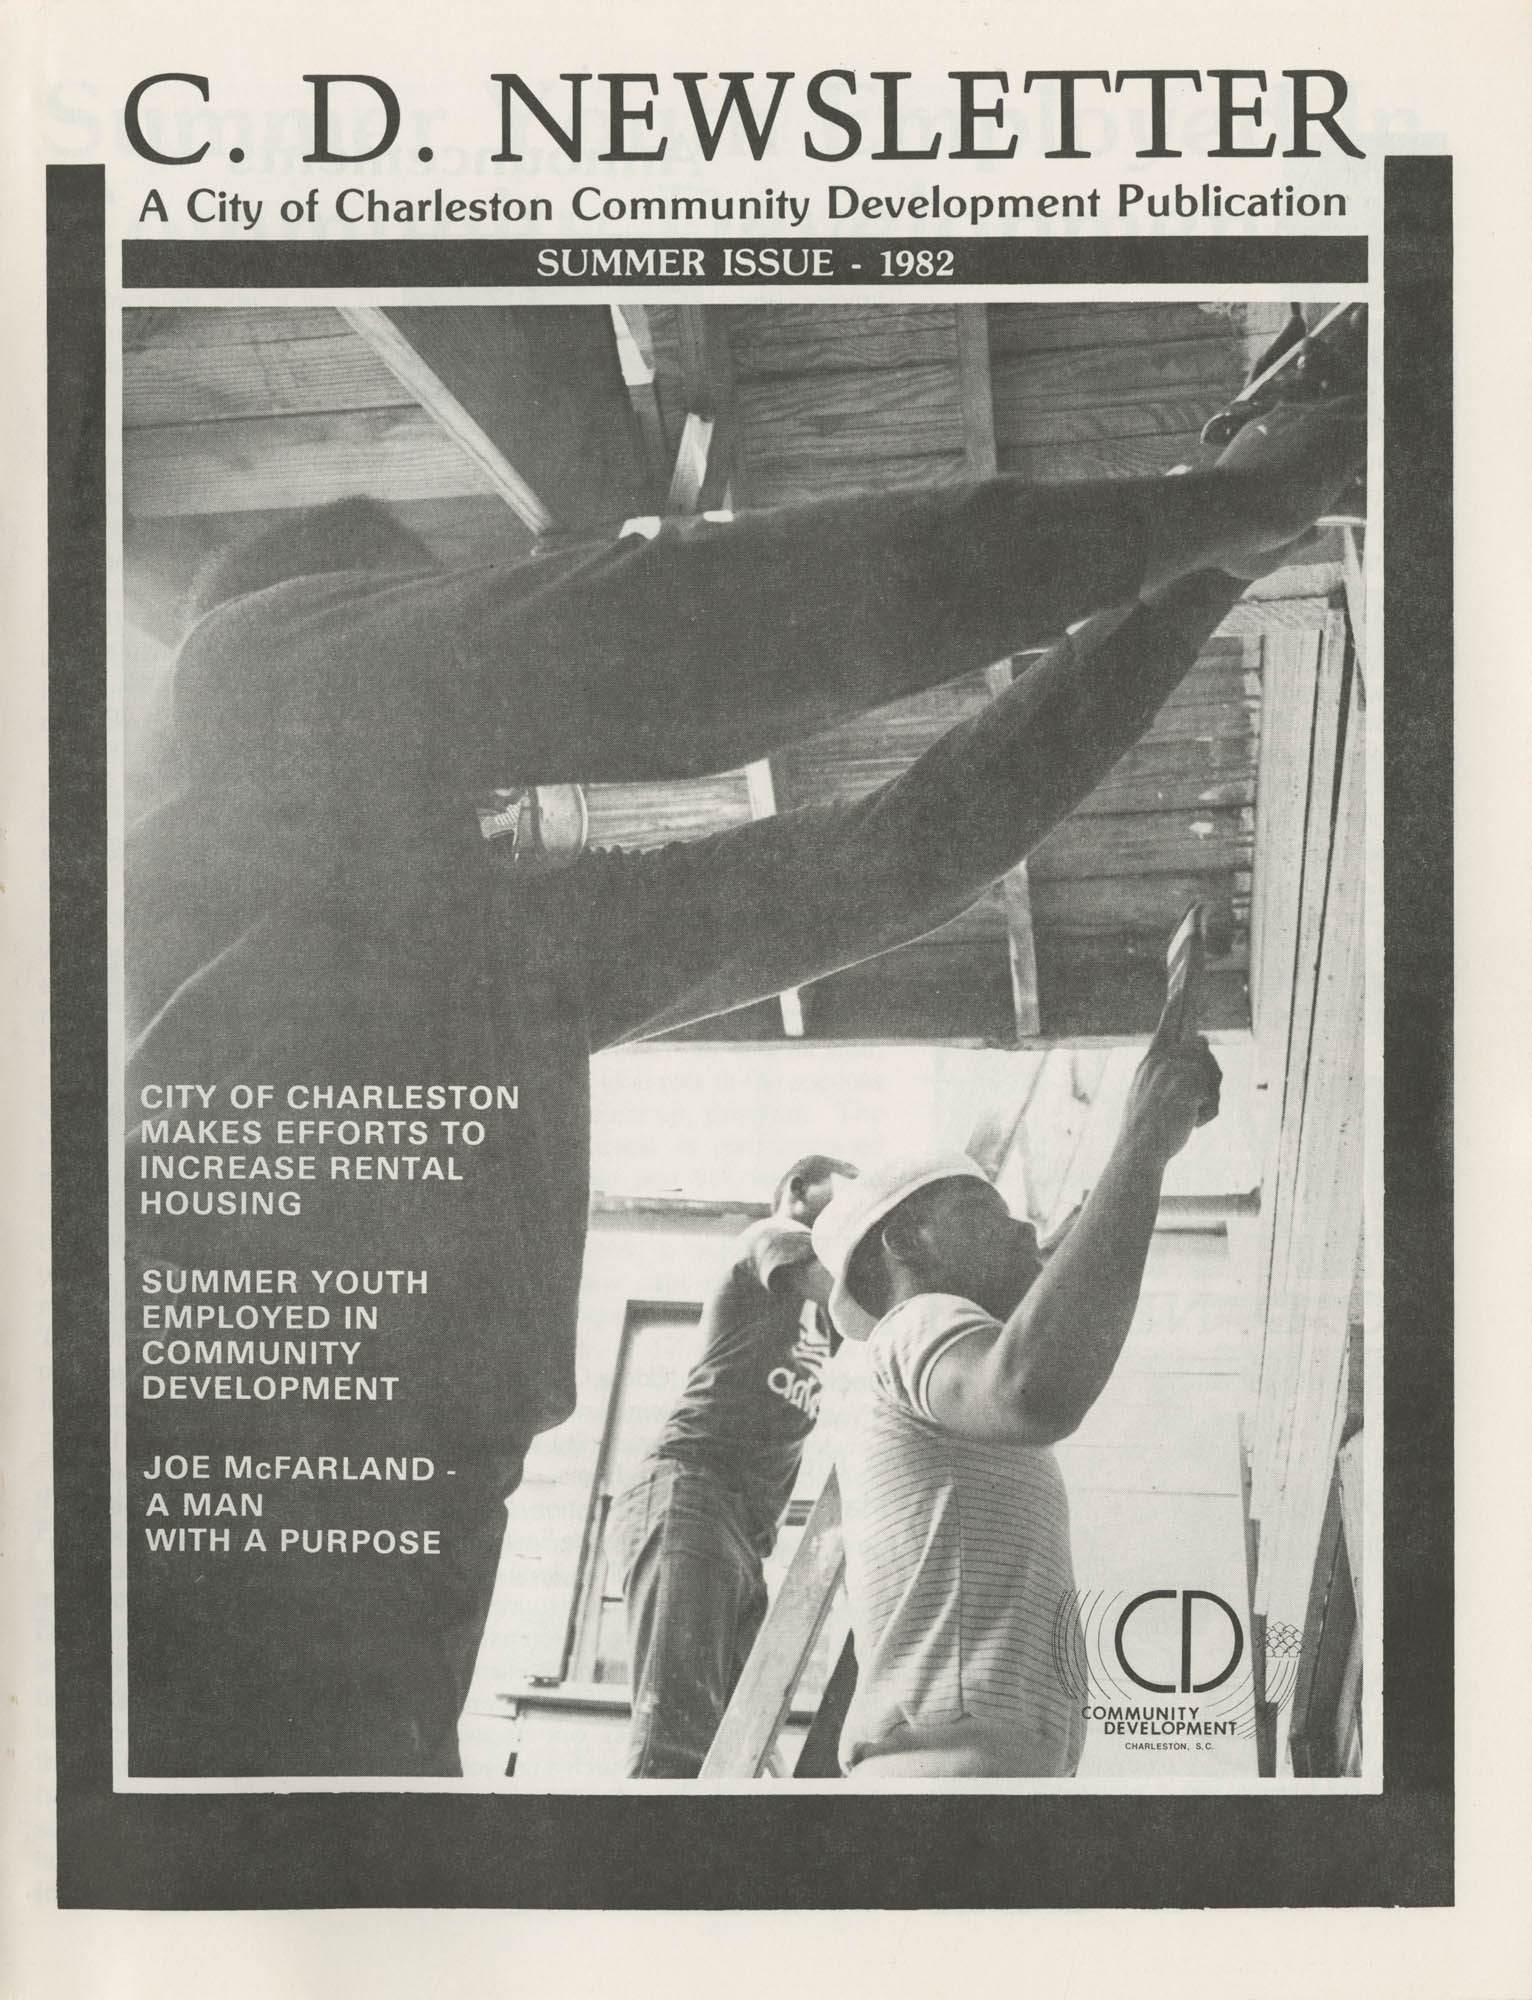 C. D. Newsletter, A City of Charleston Community Development Publication, Summer Issue - 1982